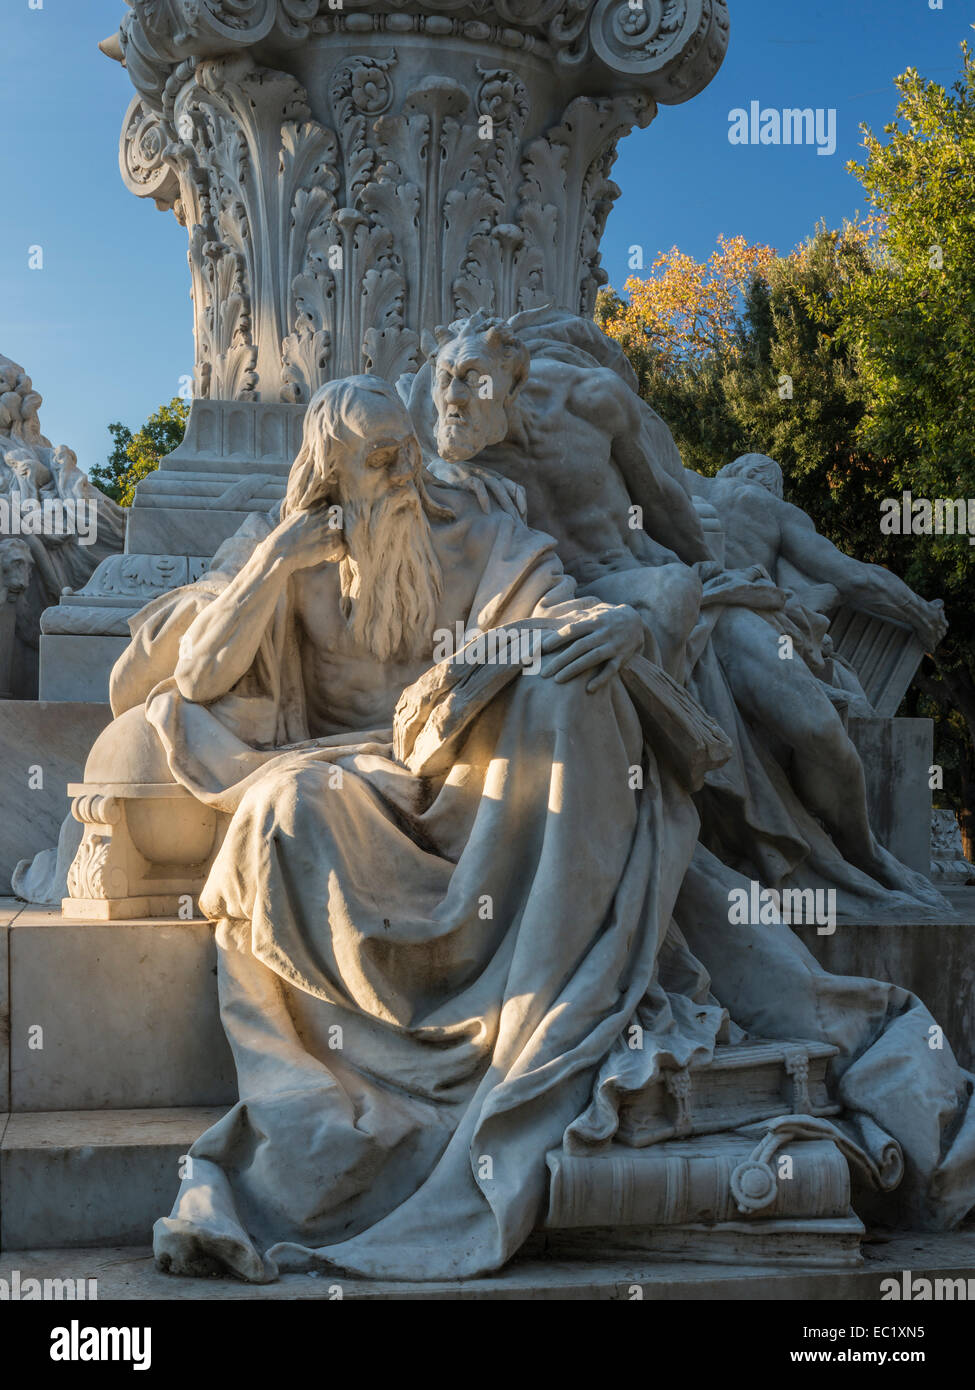 Goethe monument, sculpture group Faust and Mephistopheles, marble, 1904, sculptor Gustav Eberlein, Pinciano, Rome, Stock Photo